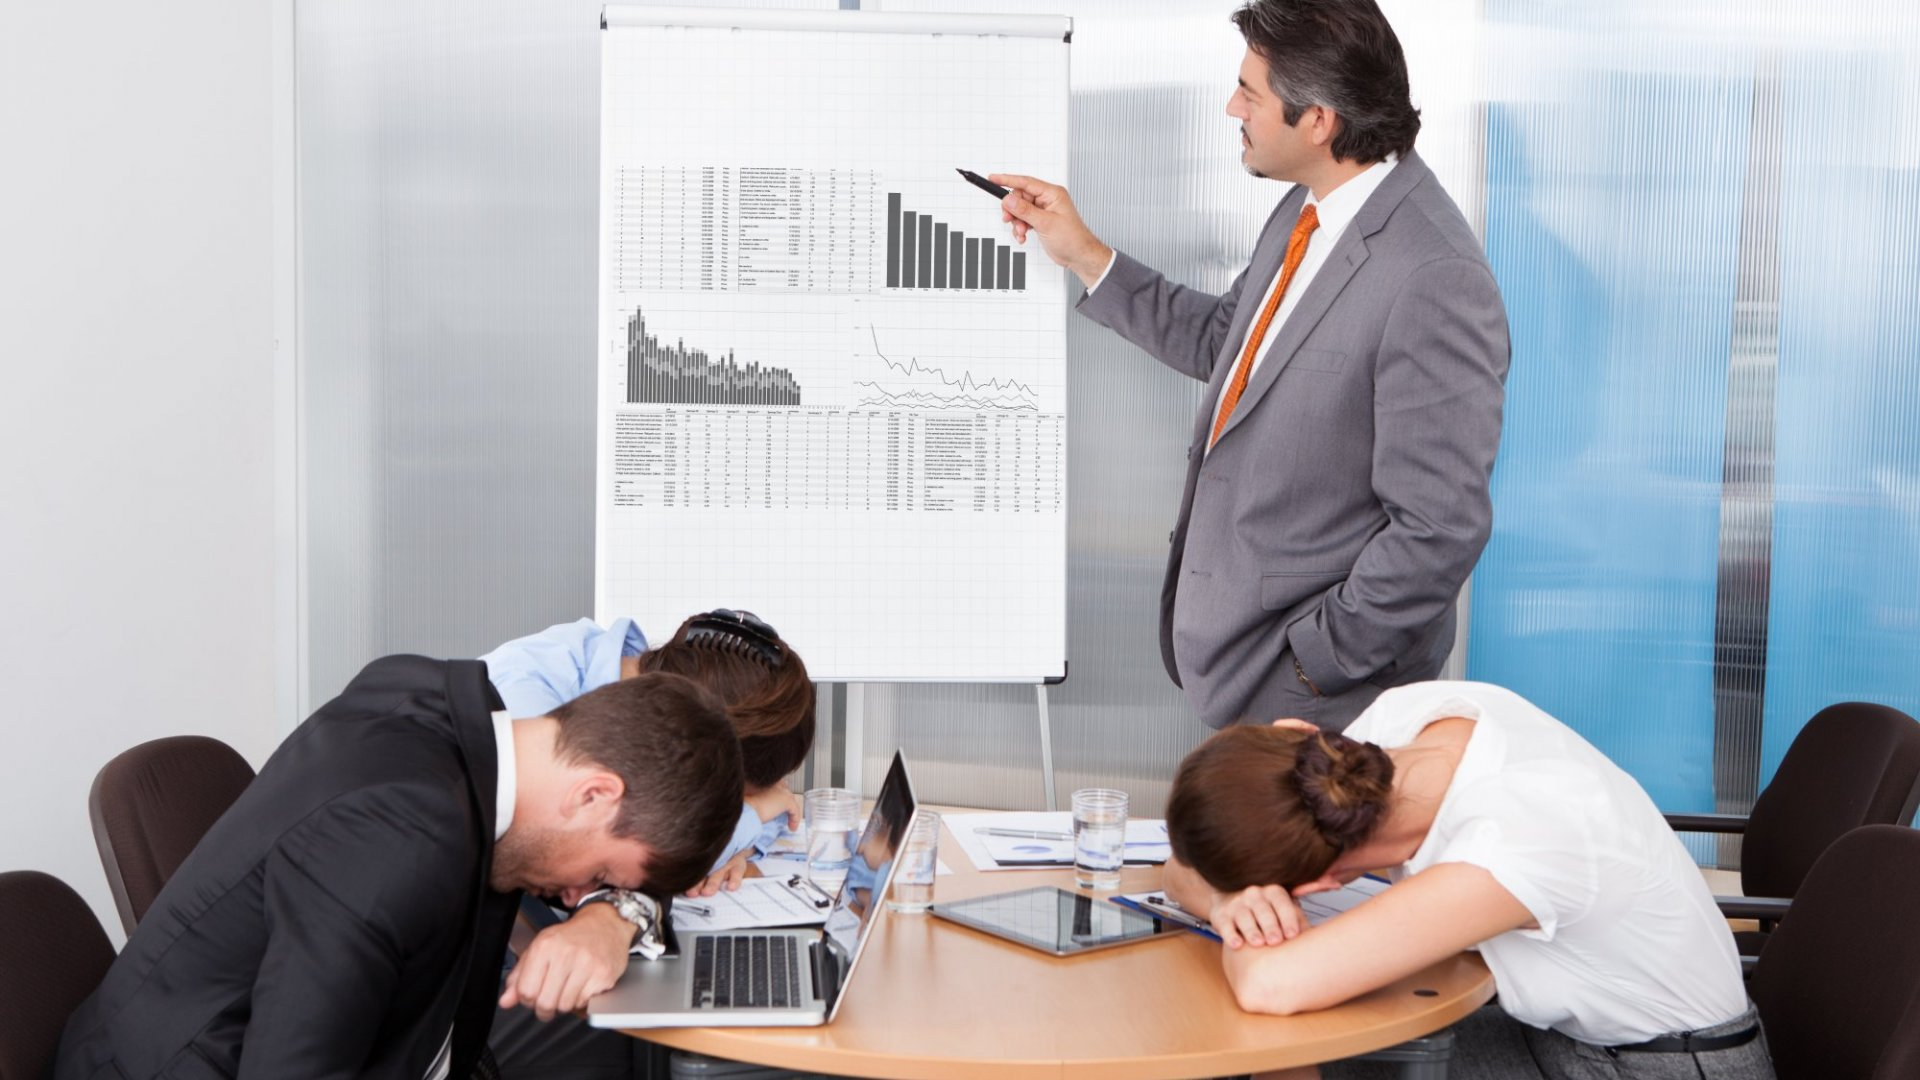 Why Most Corporate Training Fails (and How to Fix It in 3 Easy Steps)